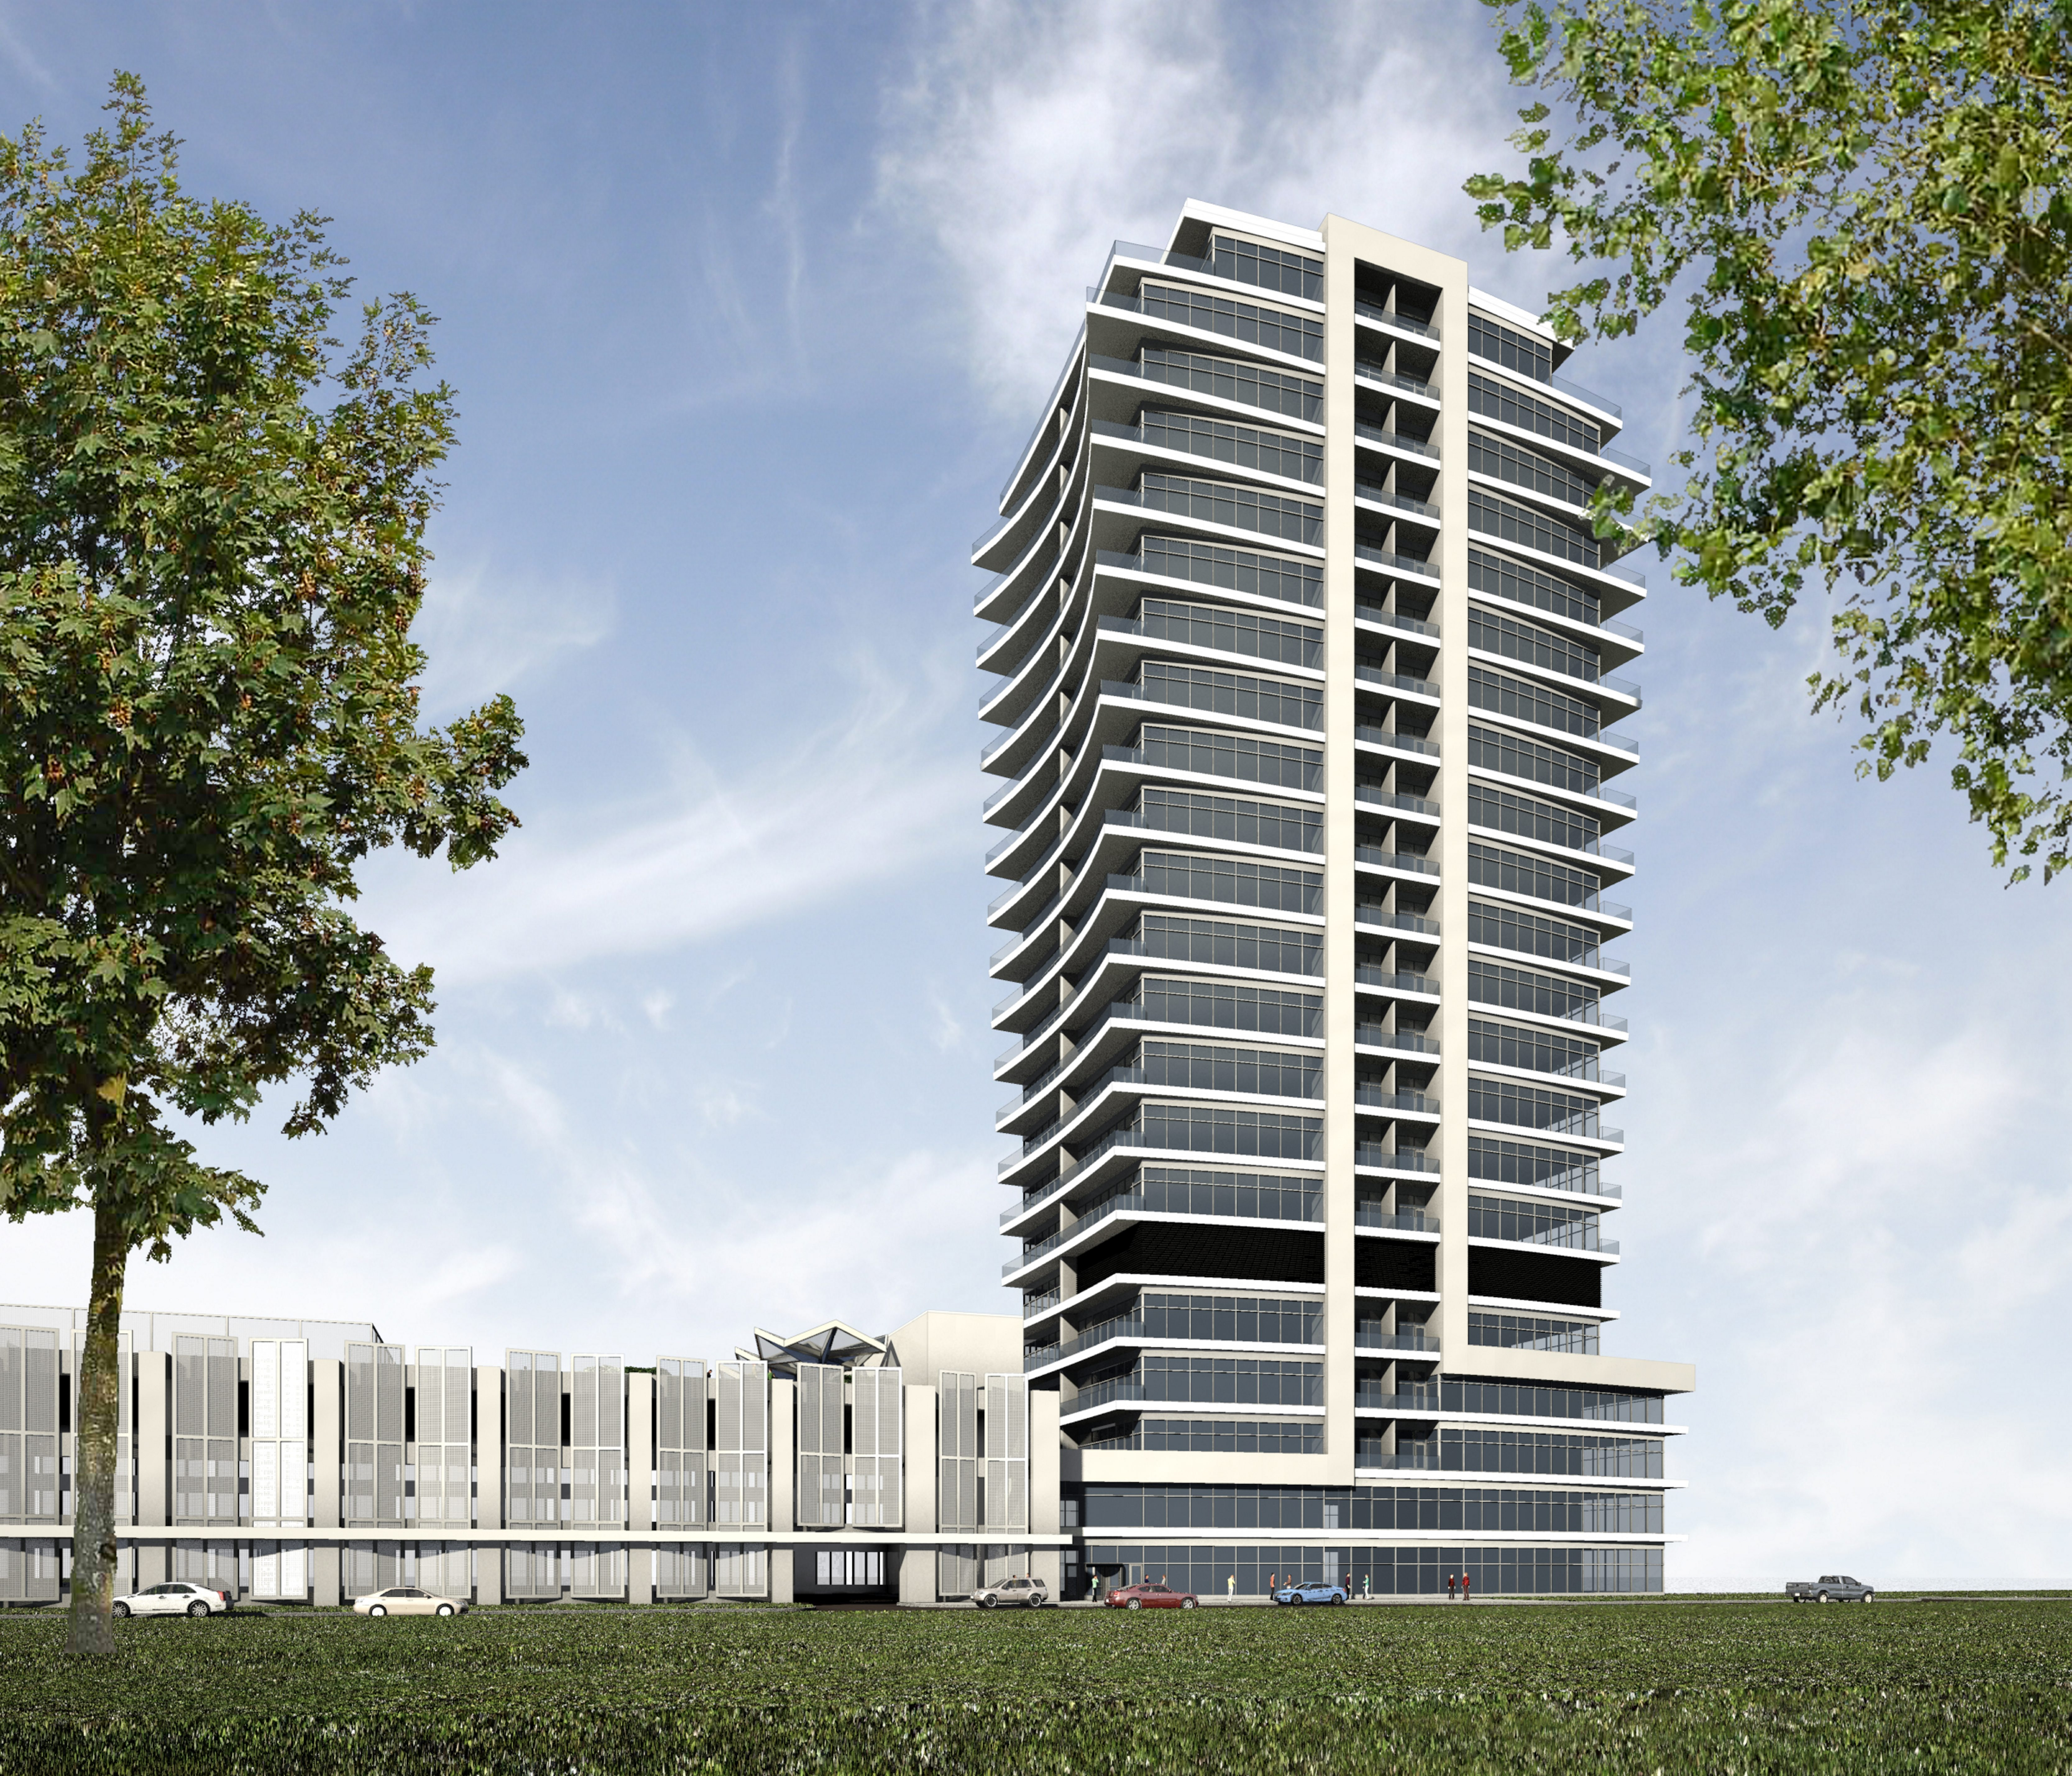 A rendering of the 23-story Queen City Landing apartment tower to be built at the Freezer Queen site on the Outer Harbor.